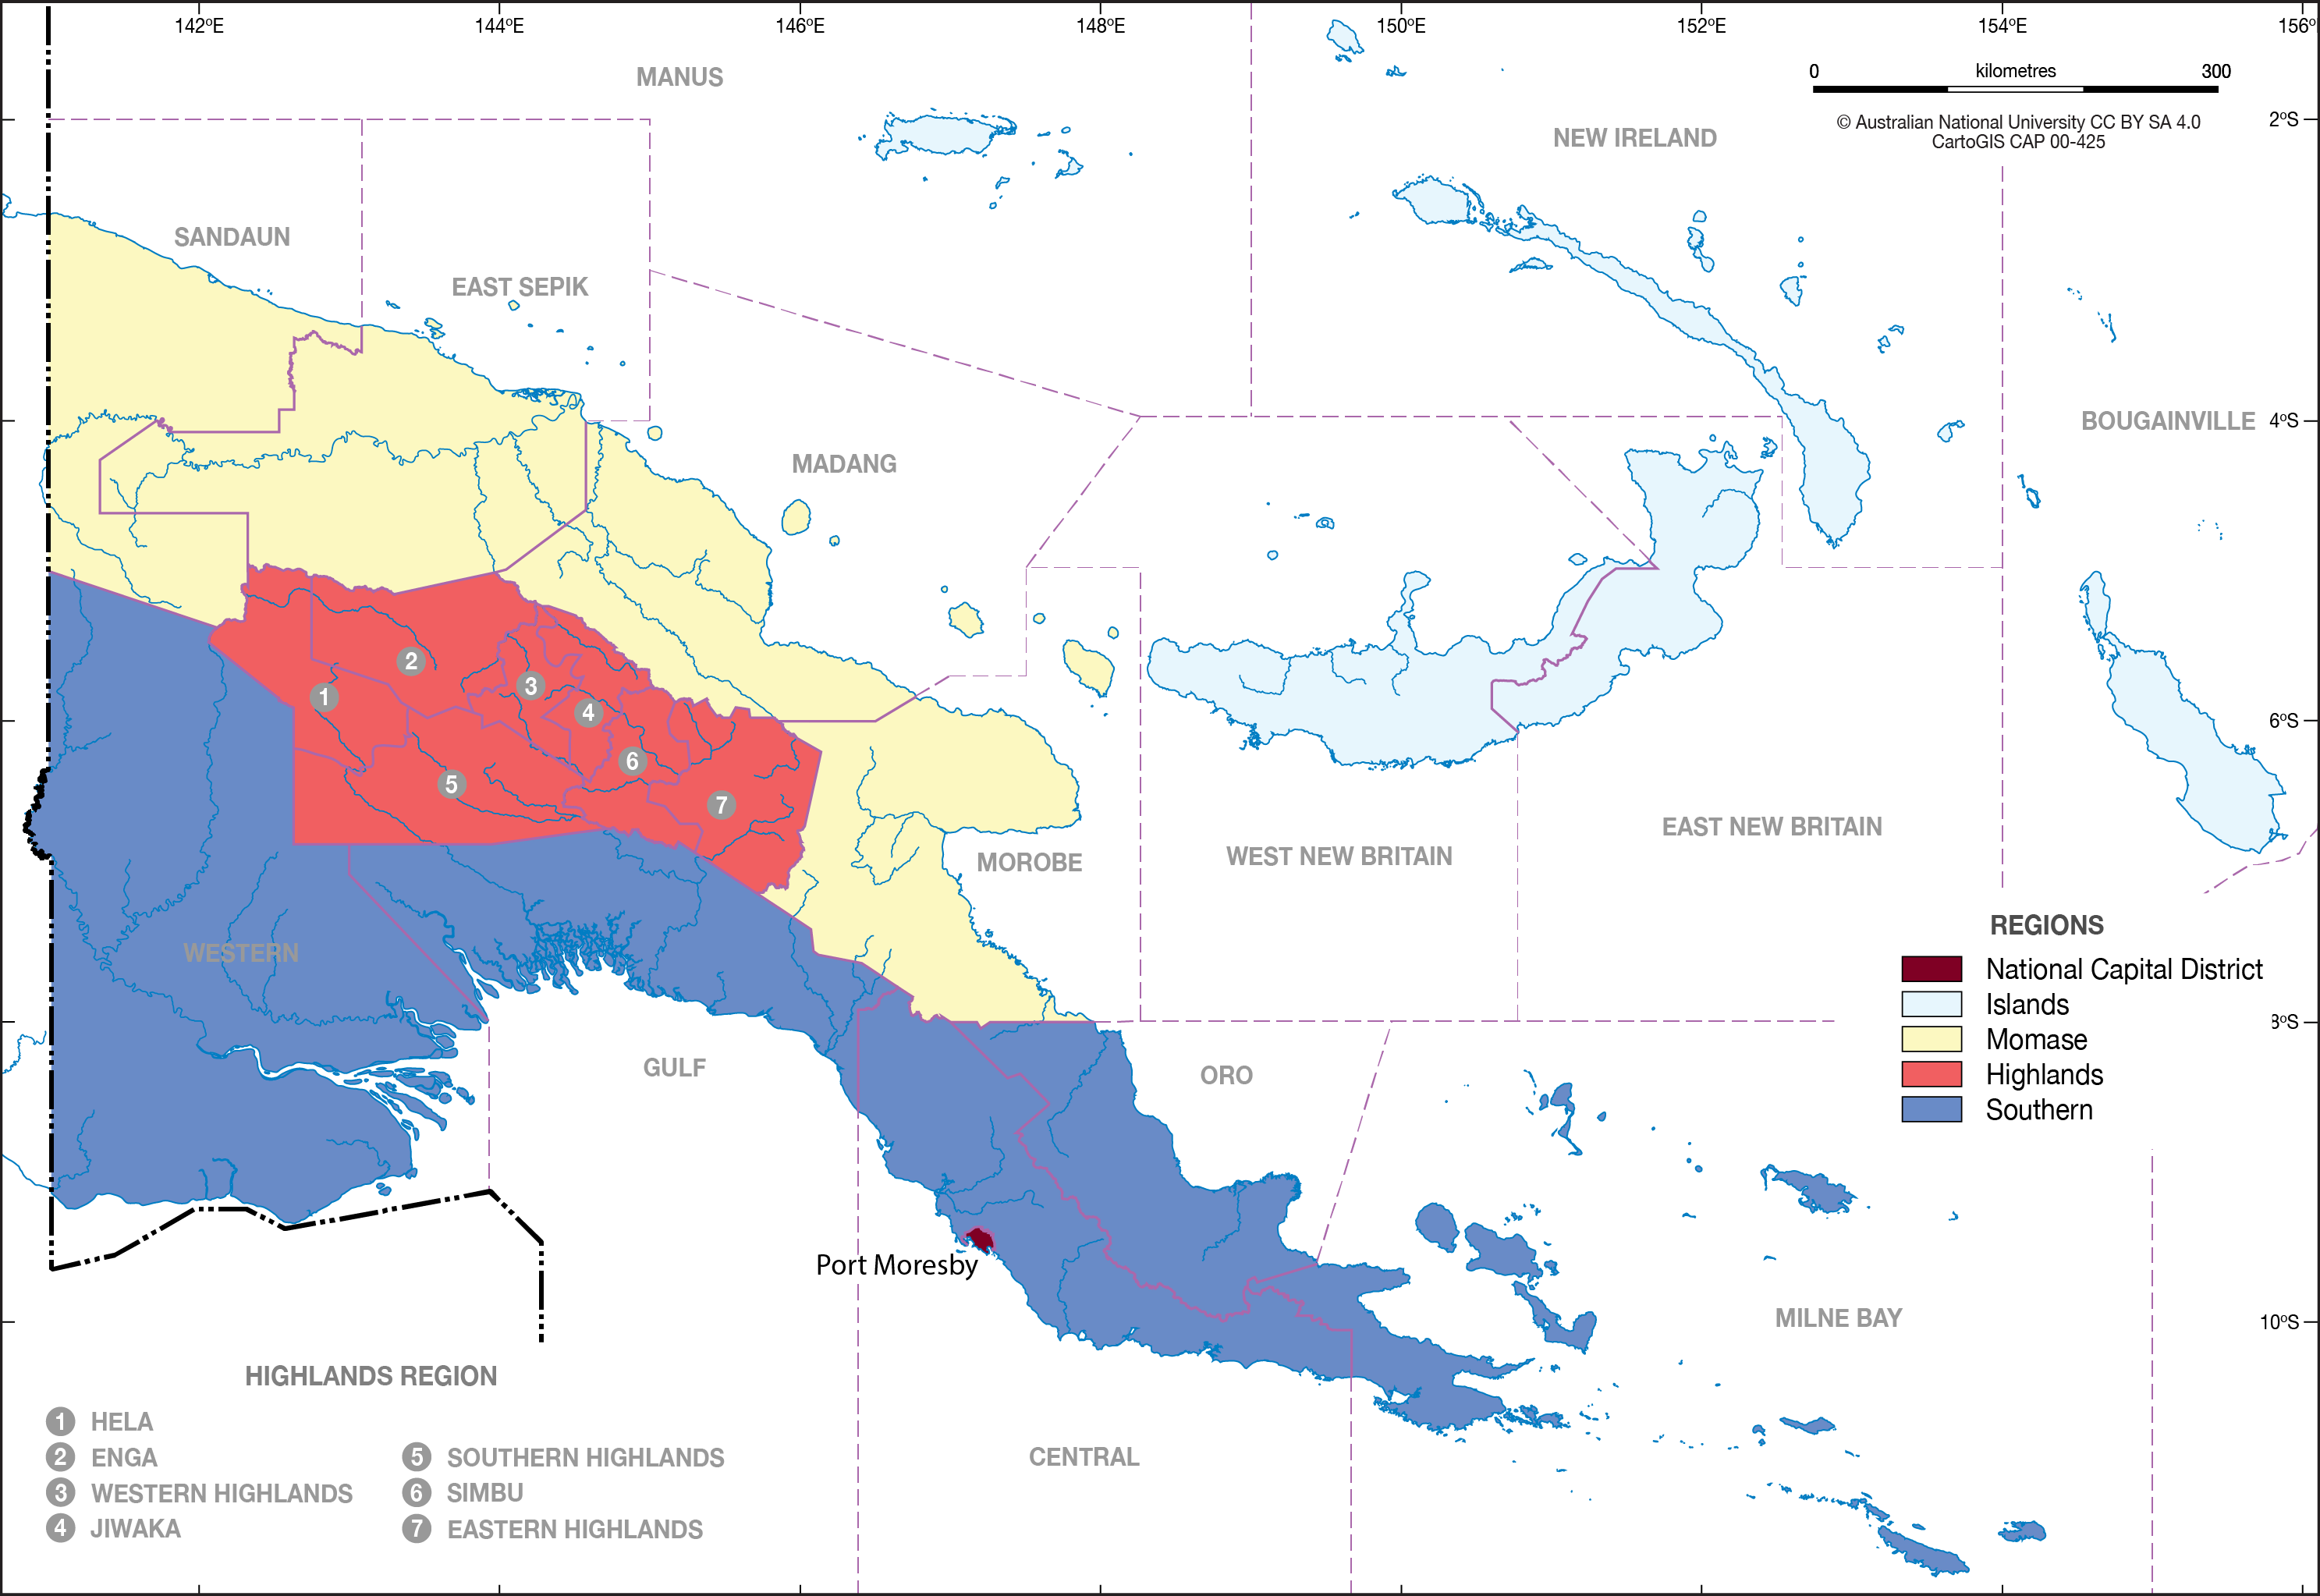 Regions of PNG - CartoGIS Services Maps Online - ANU